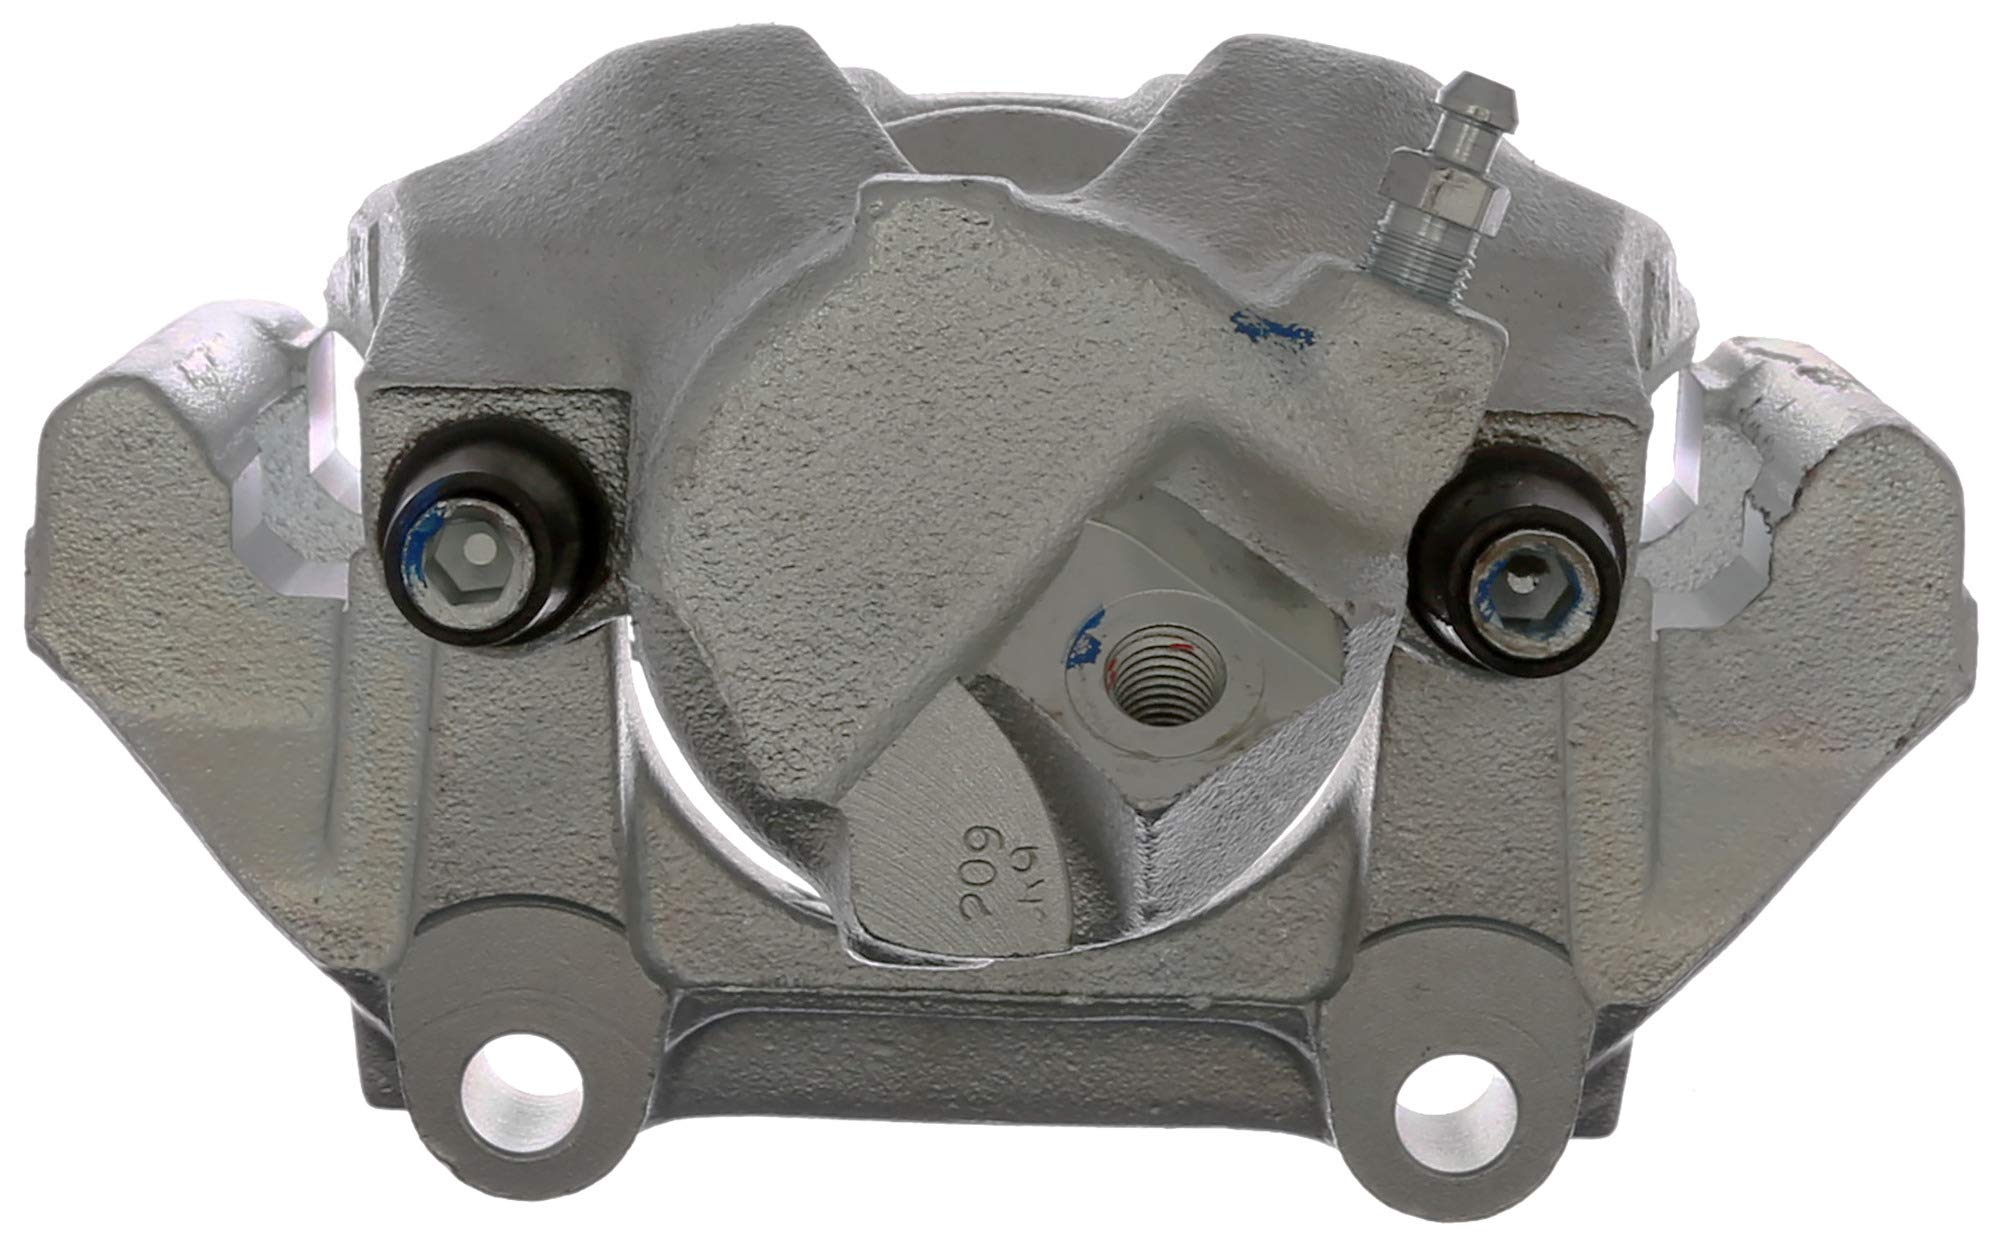 ACDelco 18FR1503C Professional Front Passenger Side Disc Brake Caliper Assembly without Pads (Friction Ready Coated), Remanufactured